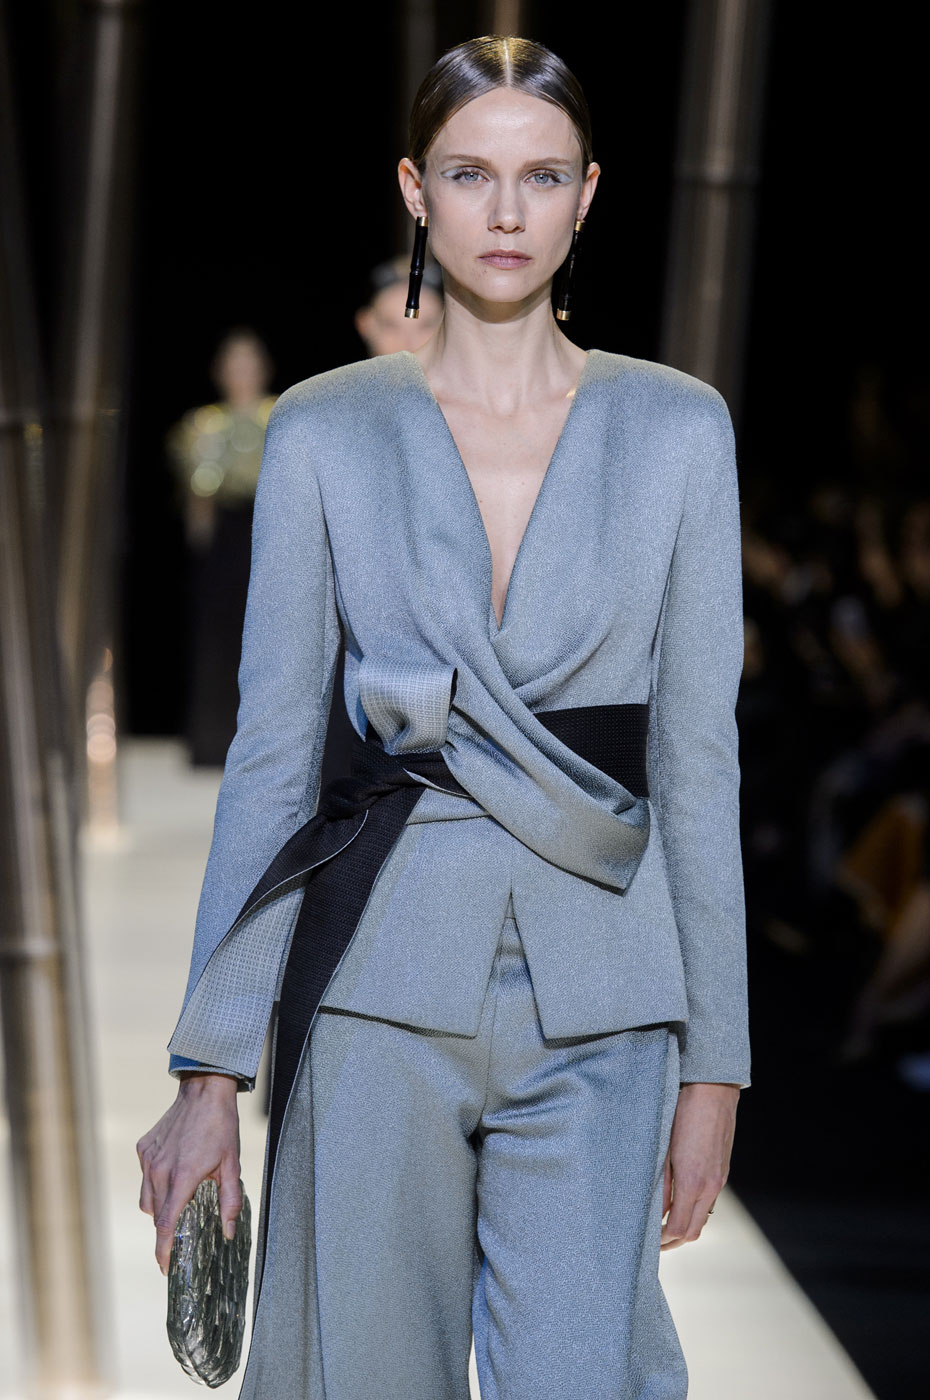 Giorgio-armani-Prive-fashion-runway-show-haute-couture-paris-spring-2015-the-impression-052